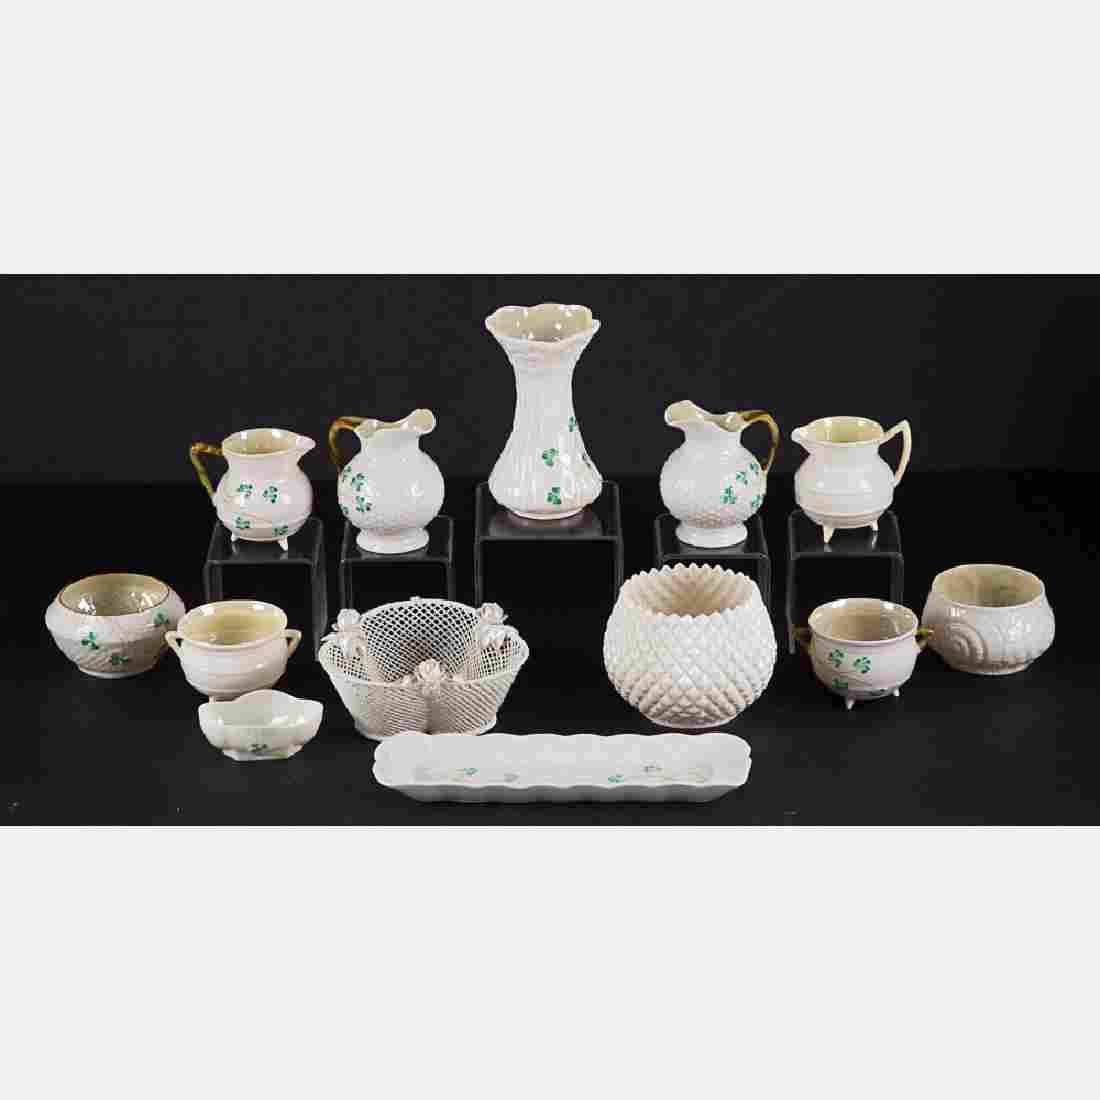 A Miscellaneous Collection of Beleek Porcelain Serving